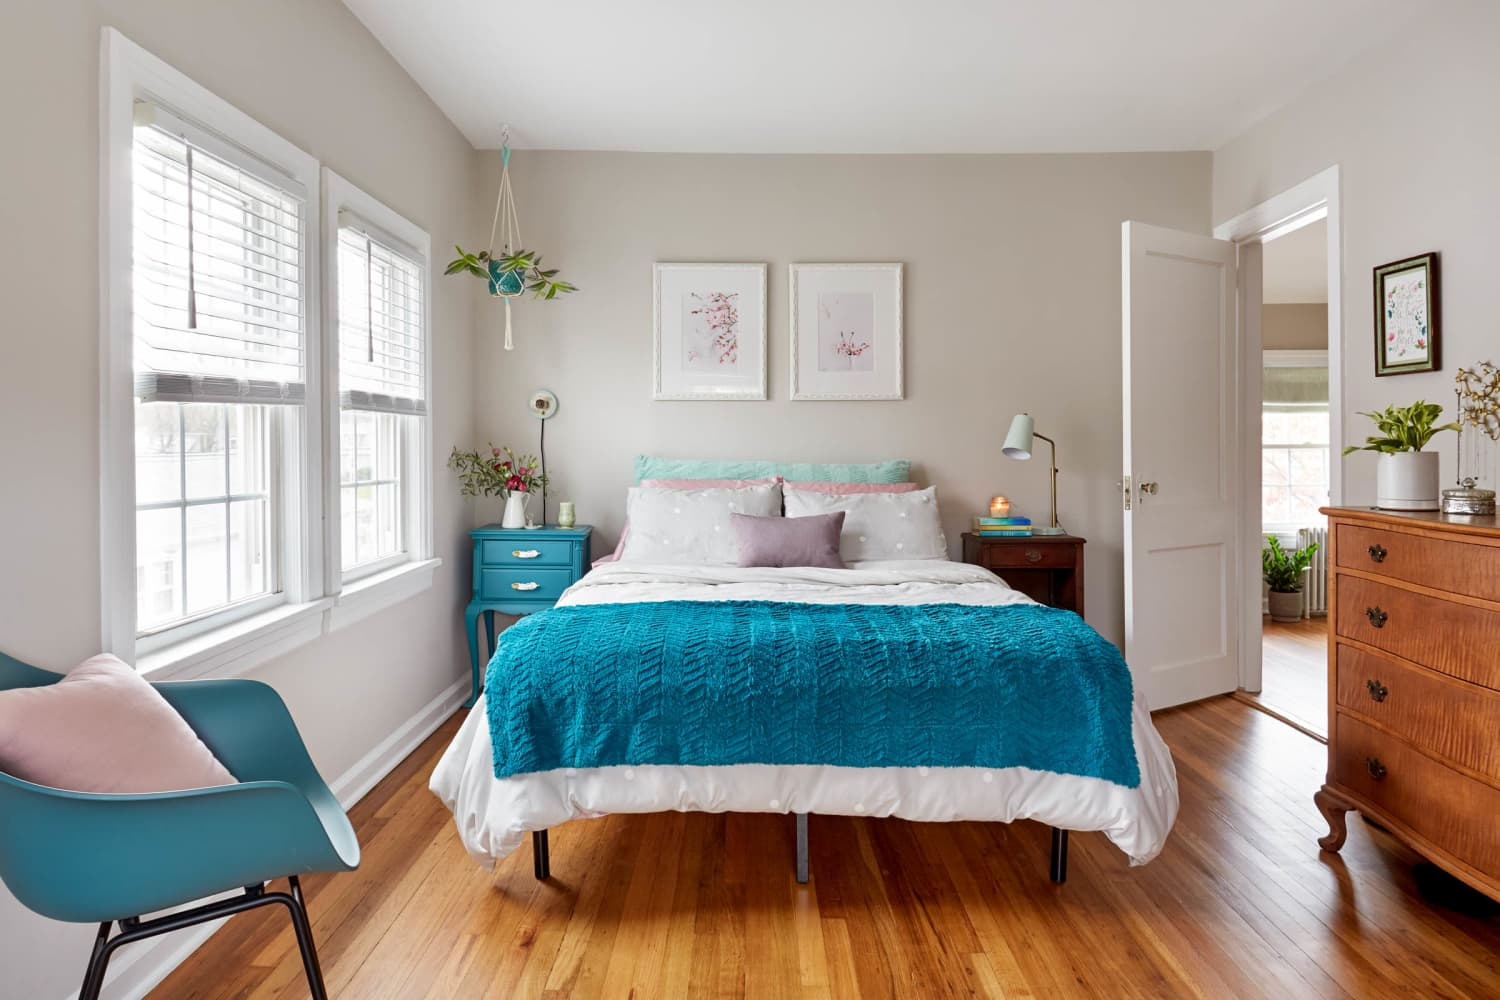 Follow These 10 Steps For a Cleaner Bedroom This Weekend